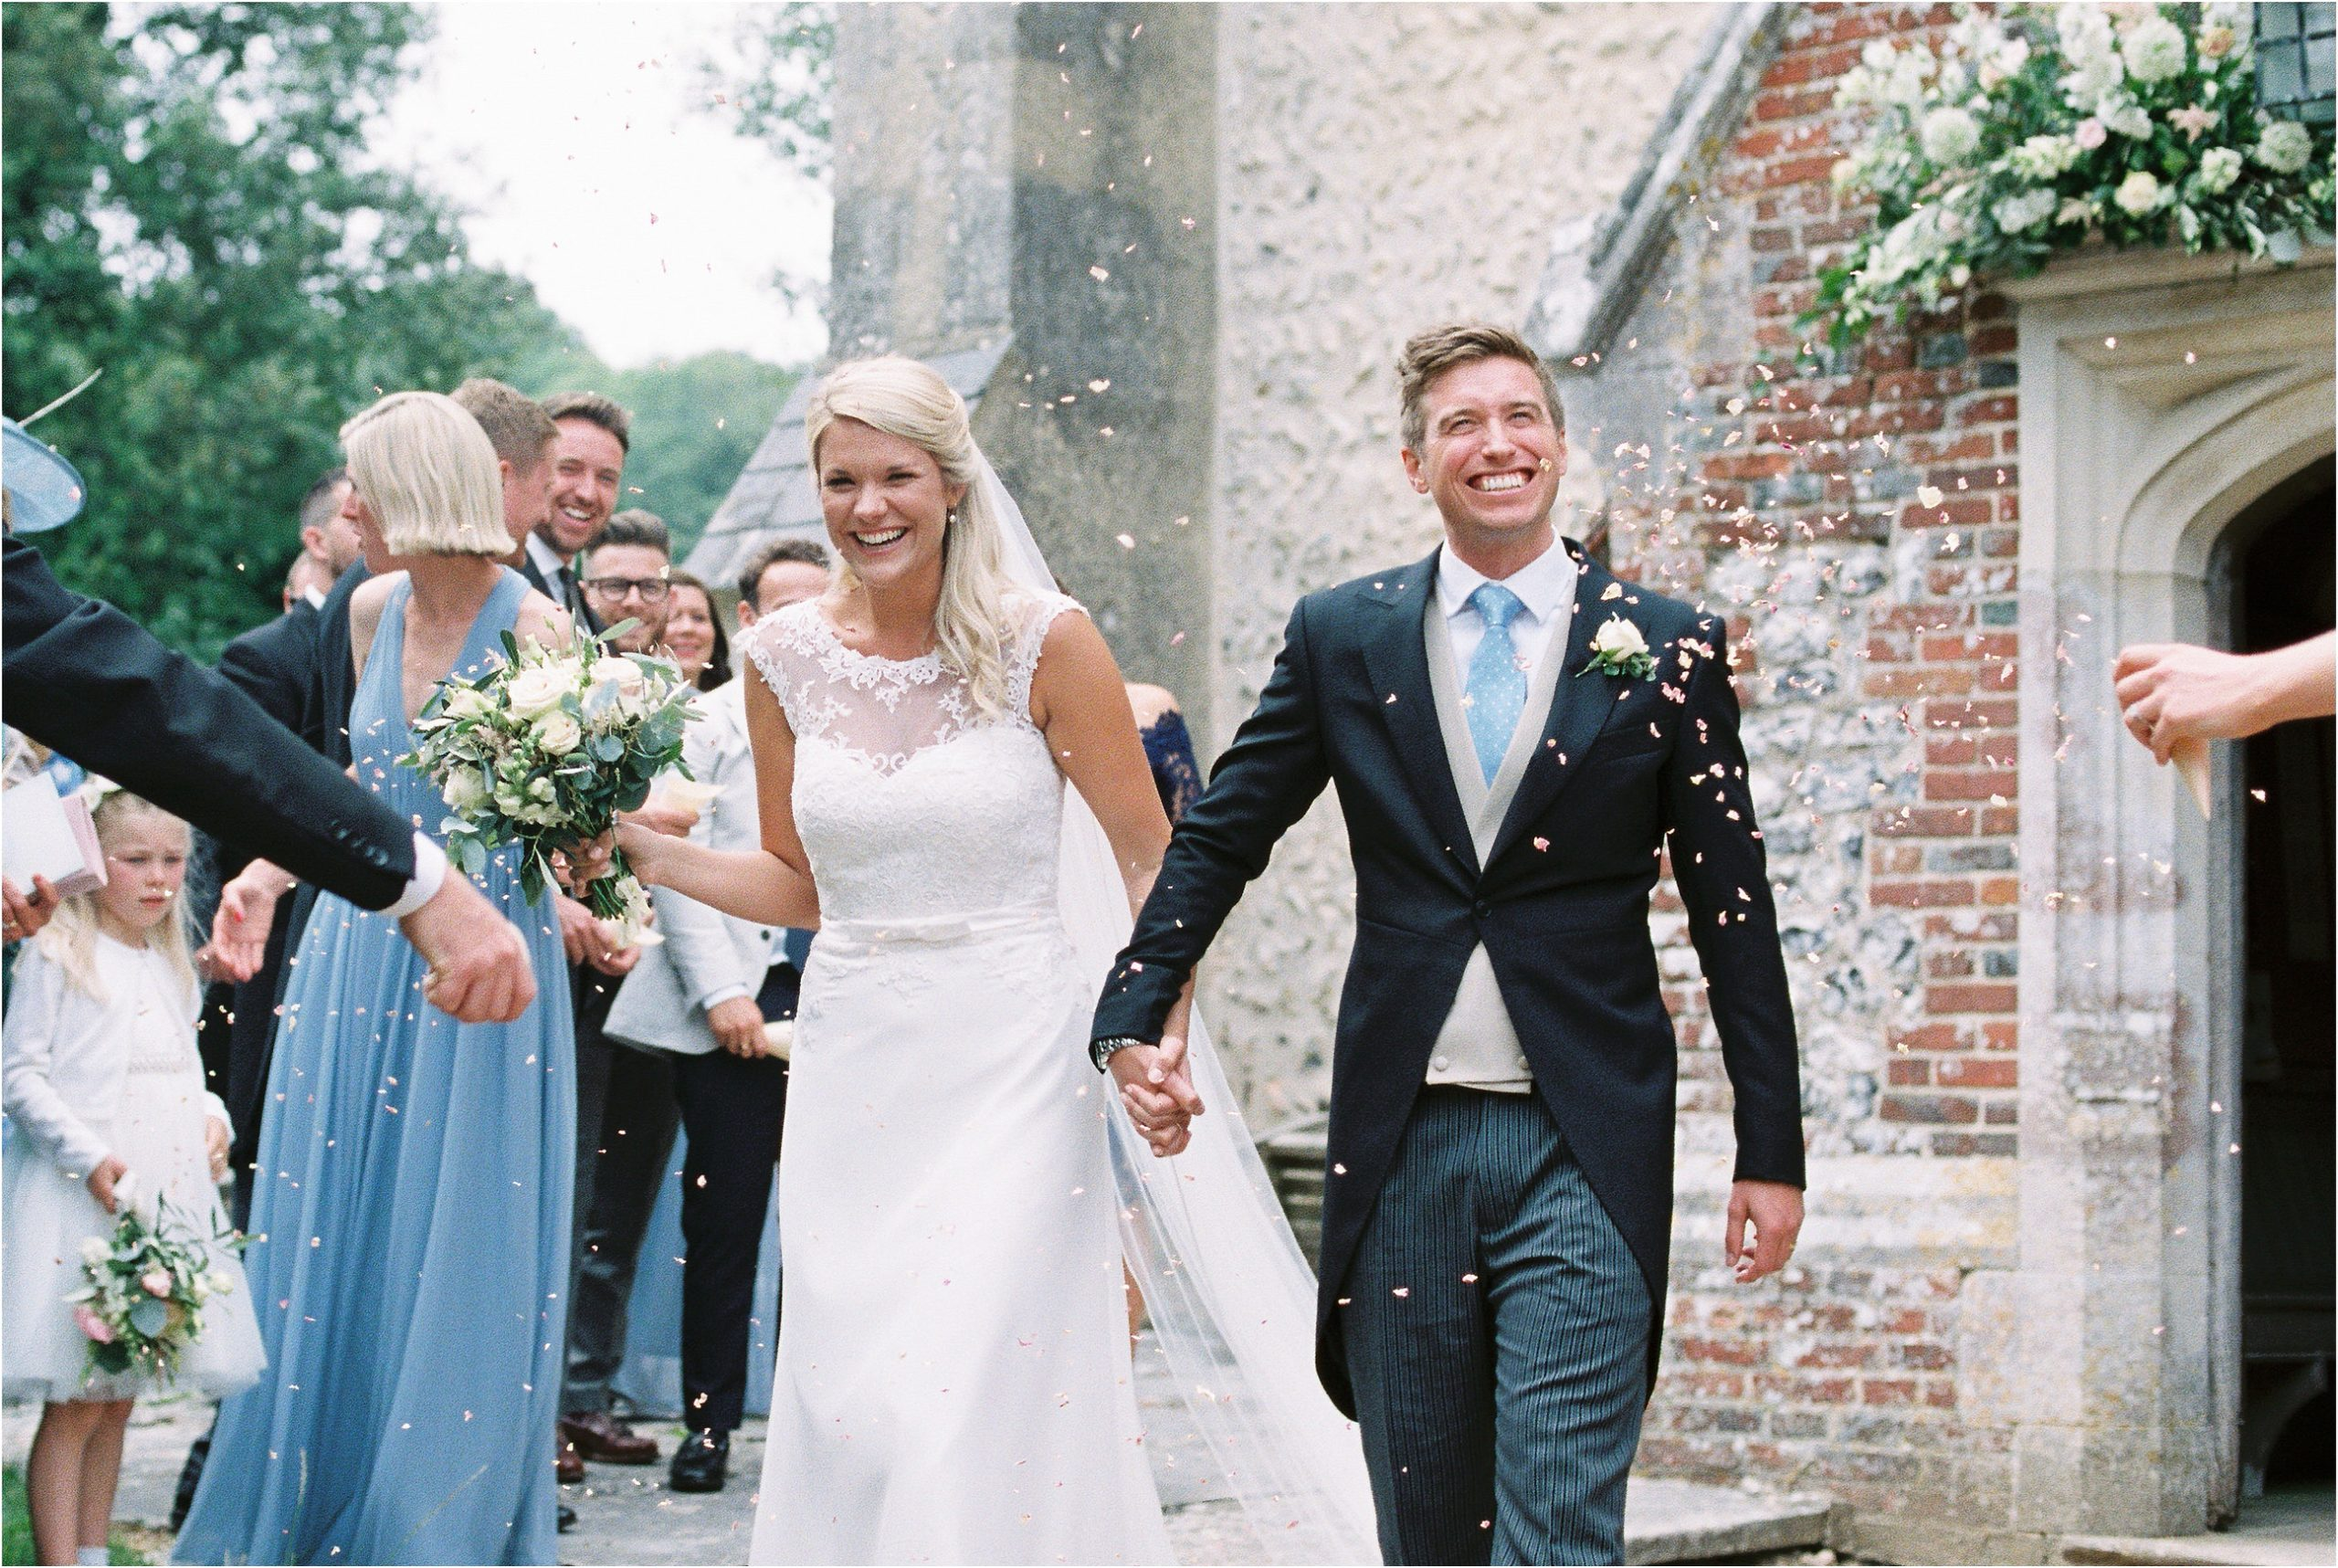 Bride and groom walking through confetti at luxury wedding